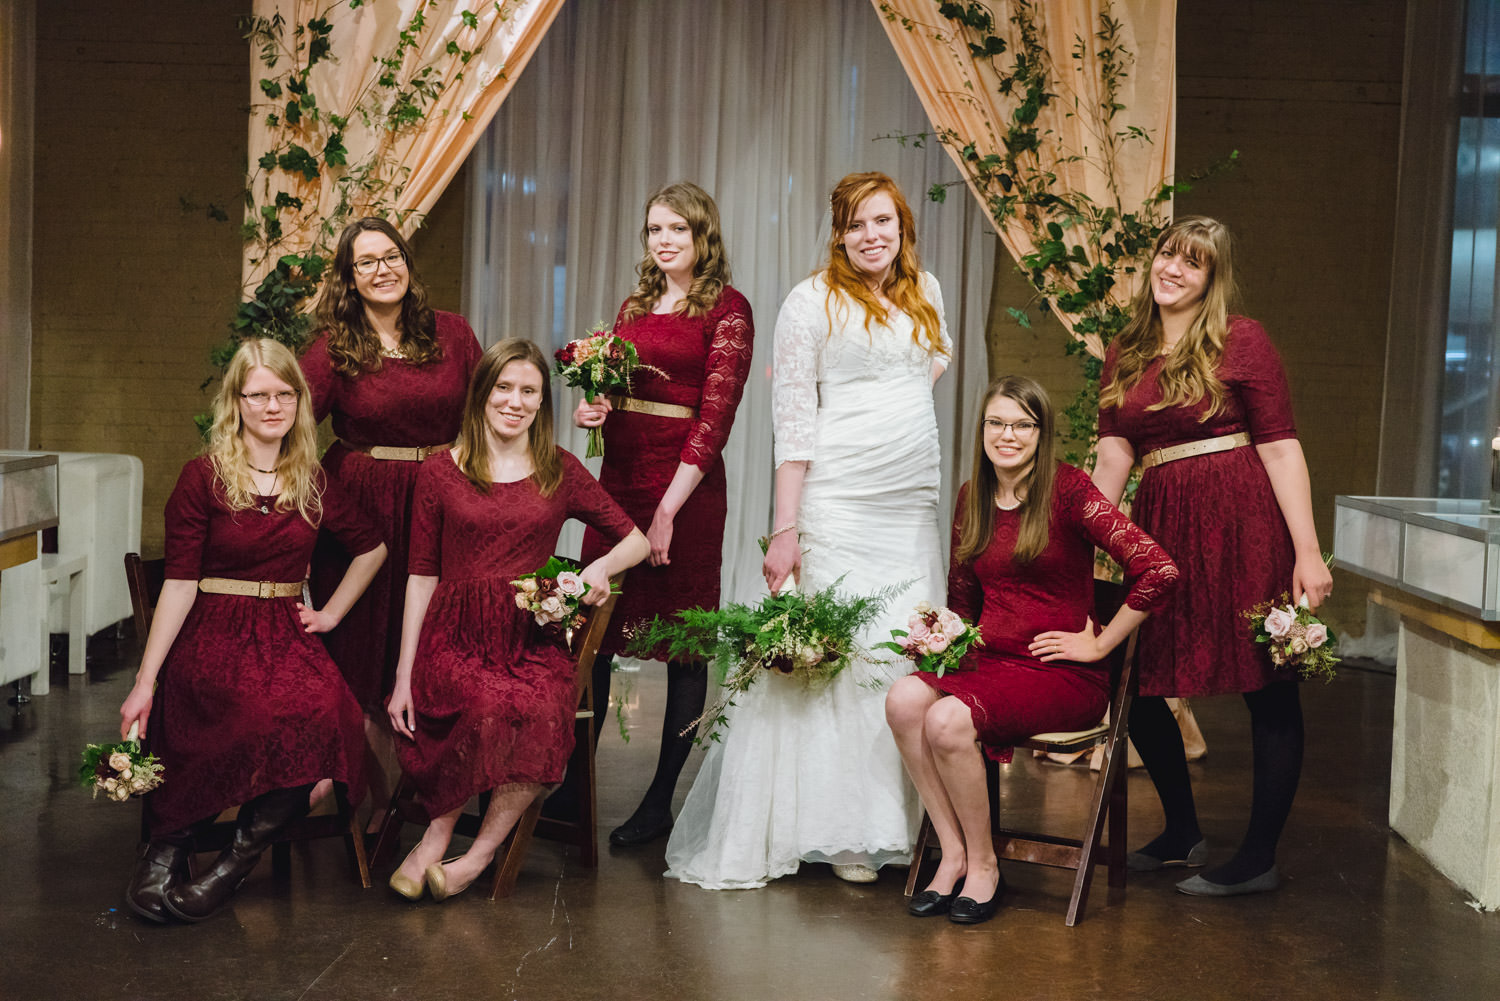 Pierpont Place wedding bride and bridesmaid photo